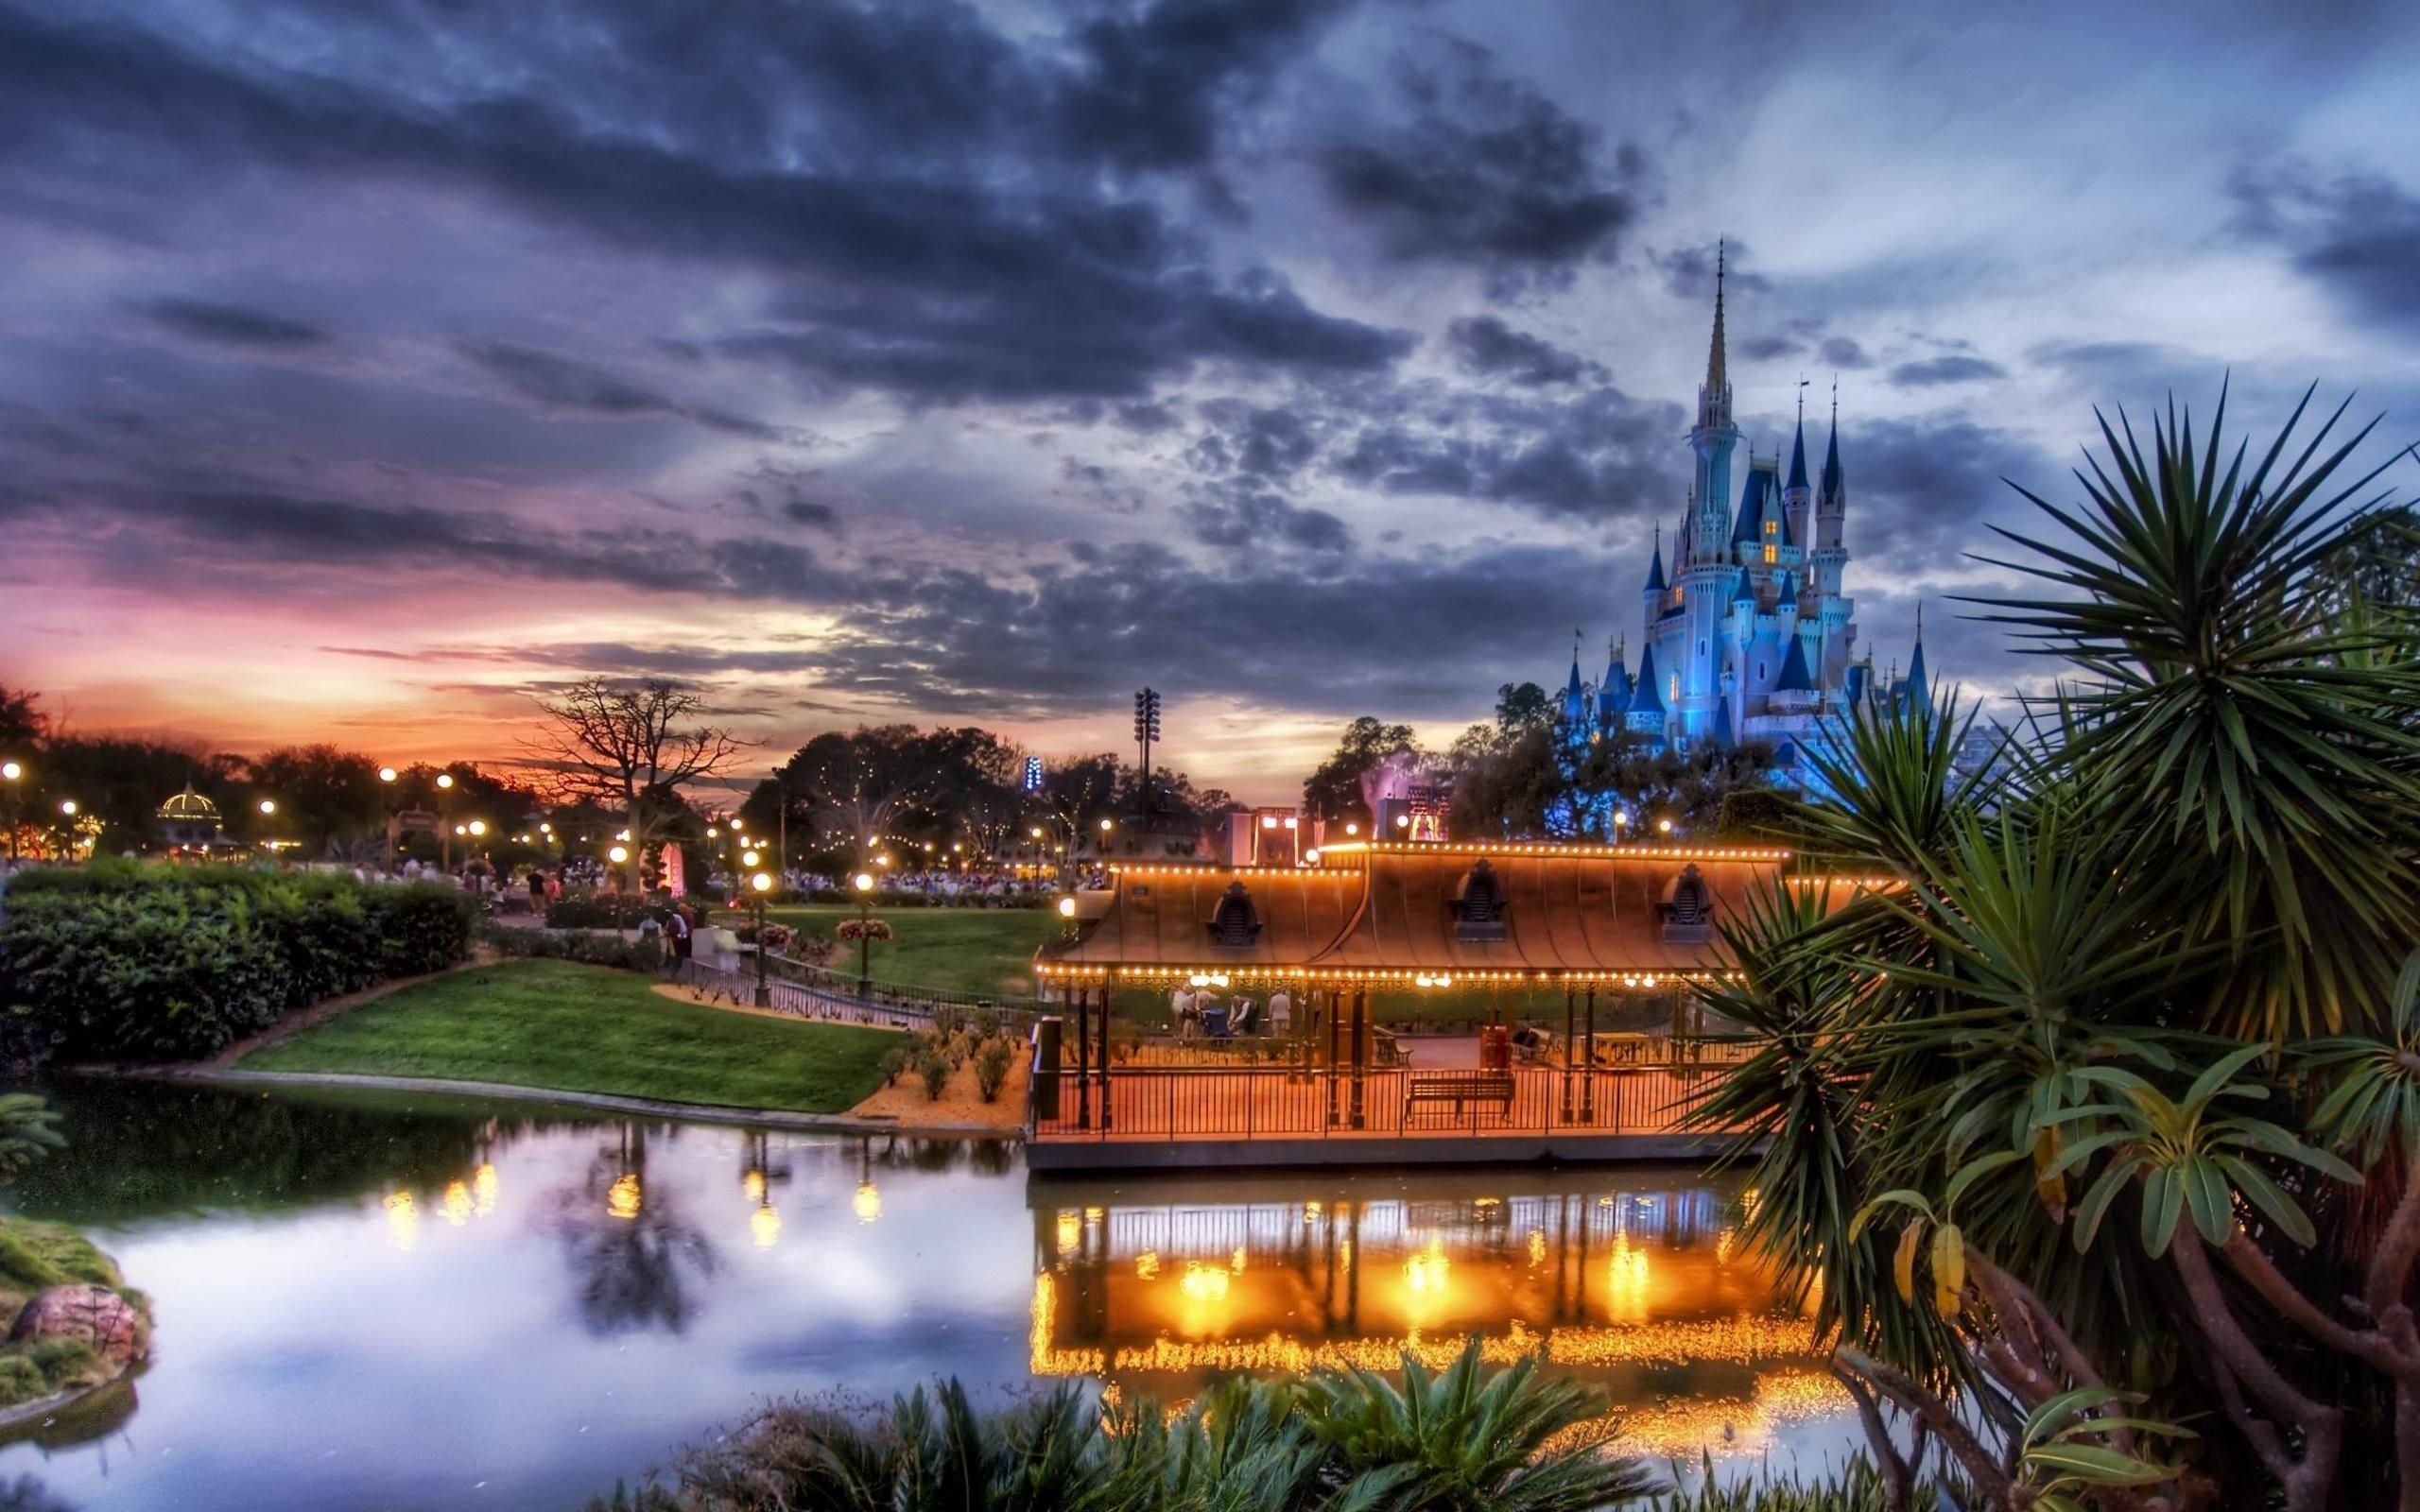 10 Most Popular Walt Disney World Desktop Wallpaper Full Hd 1080p For Pc Desktop Disney World Pictures Disney World Resorts Disney World